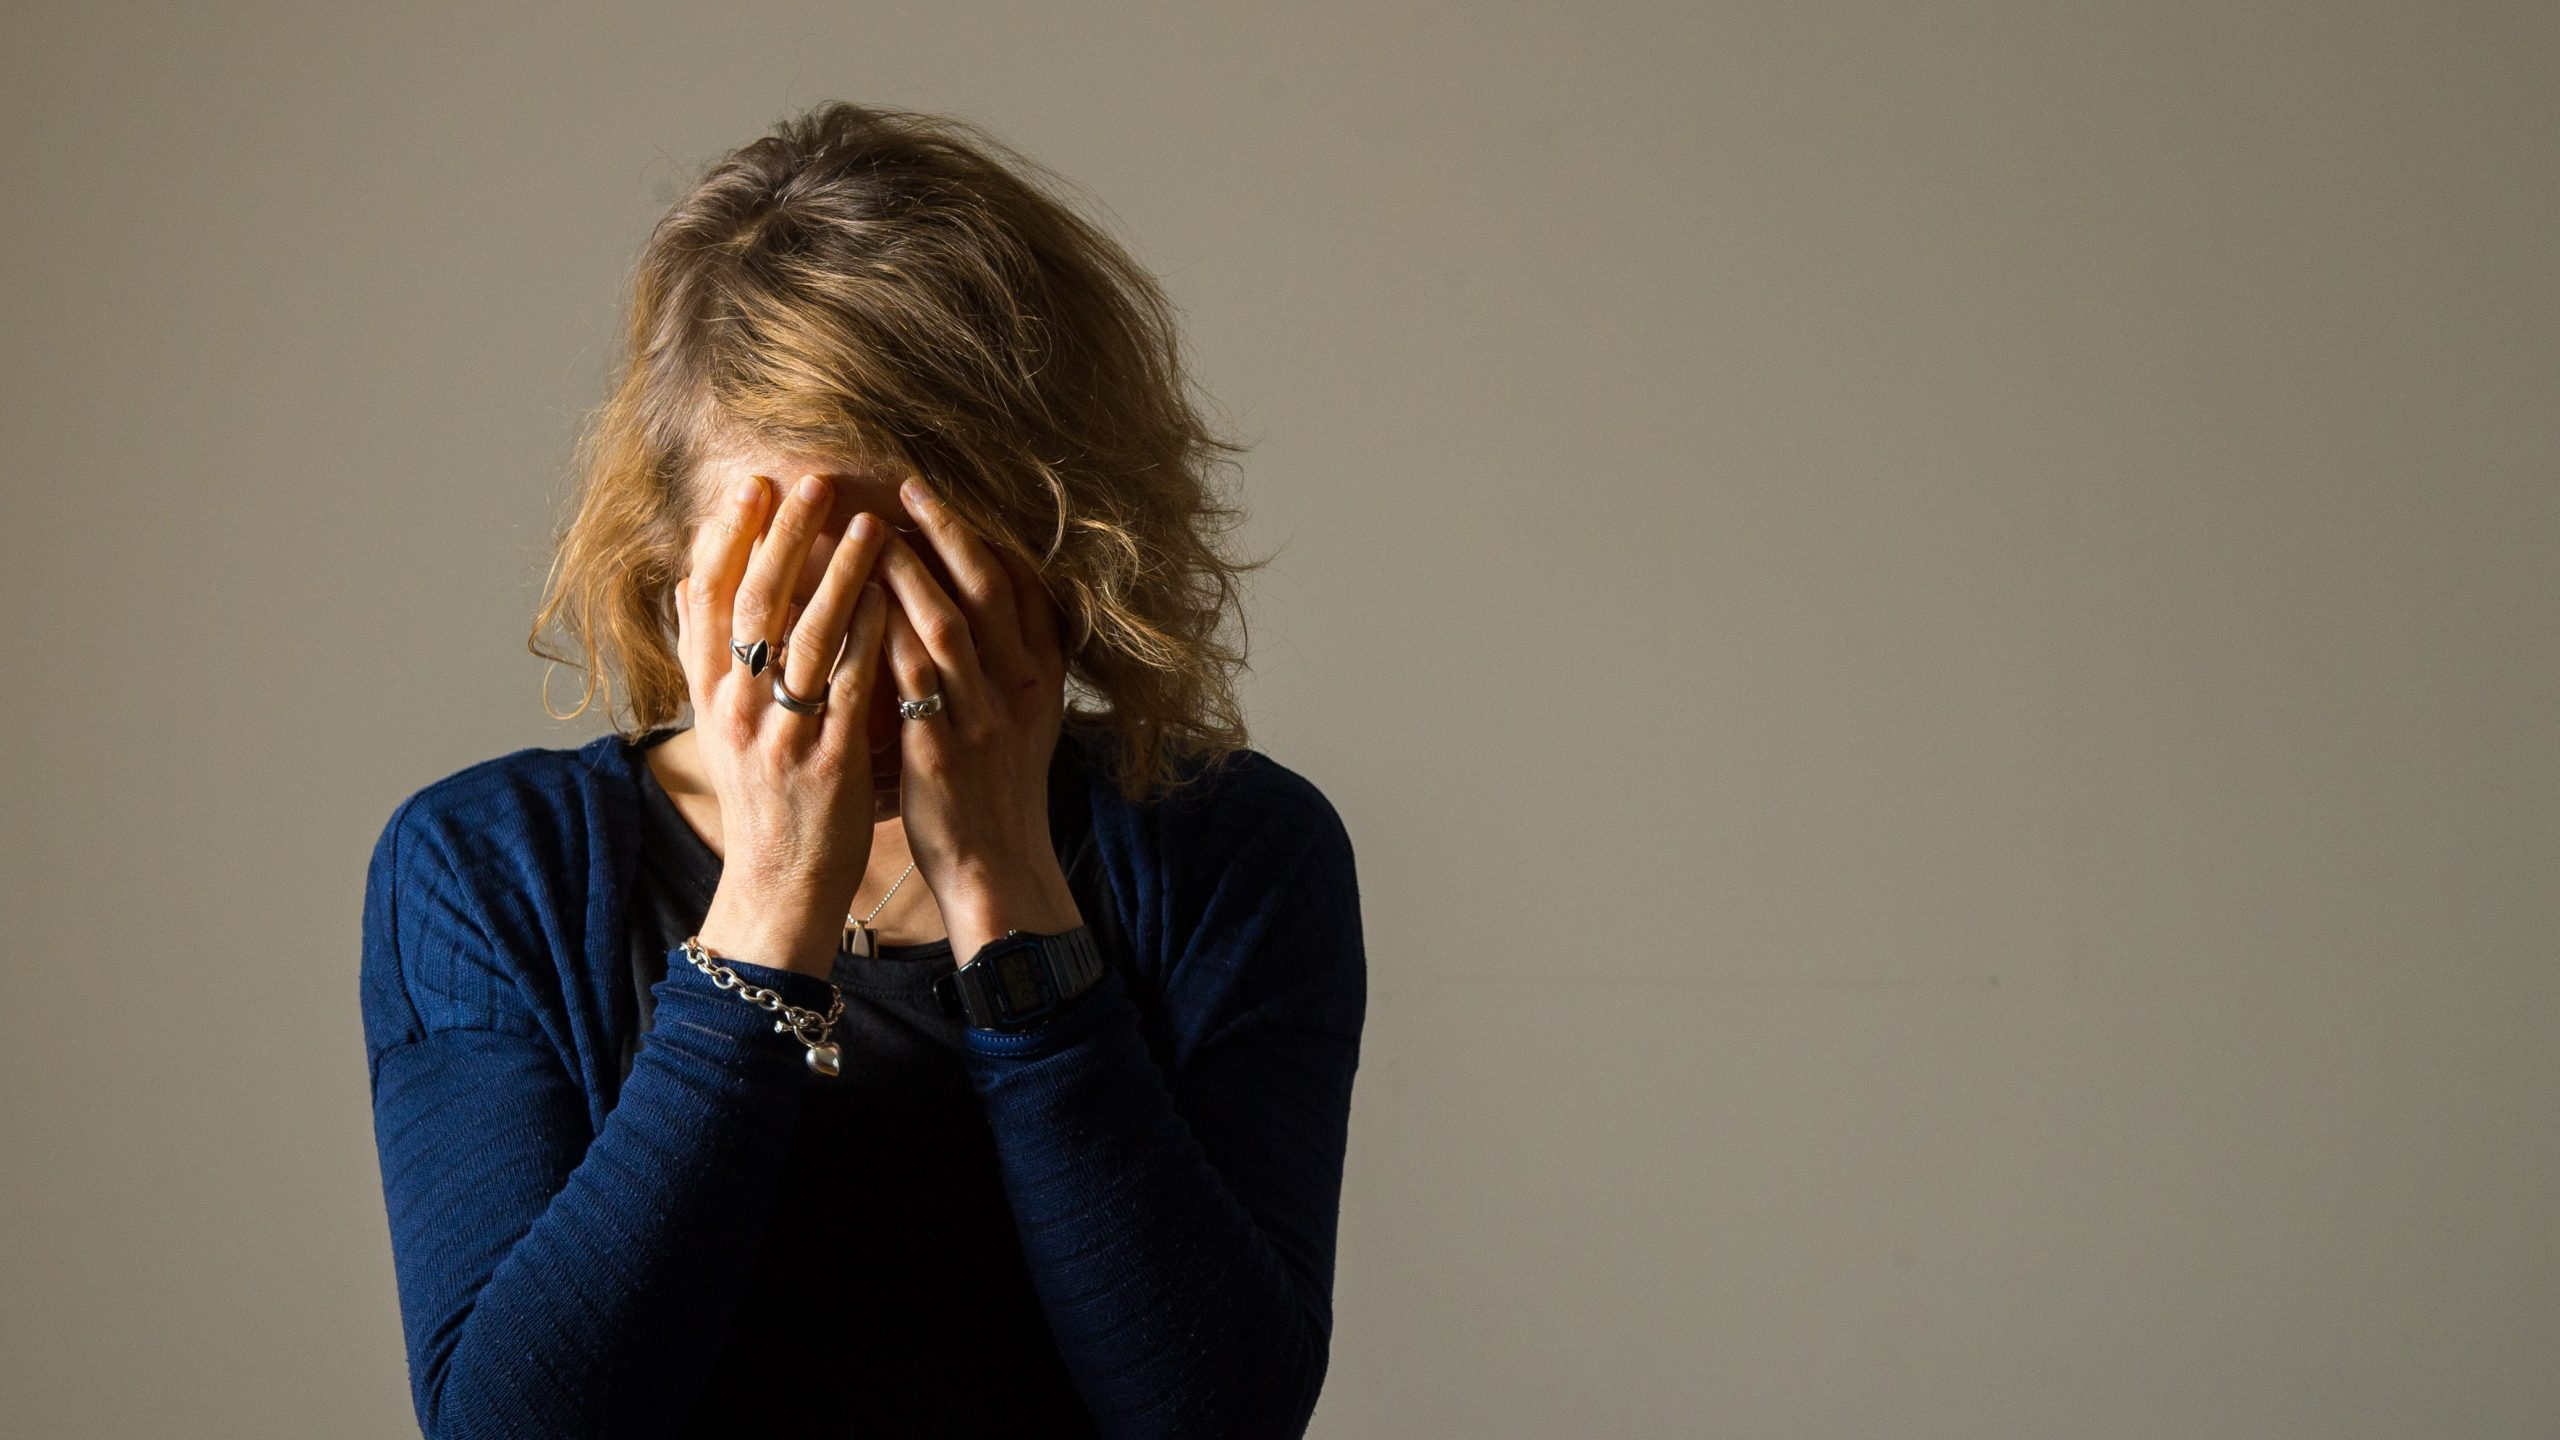 Read more about the article Domestic abuse concerns rise as England plays in Euro 2020